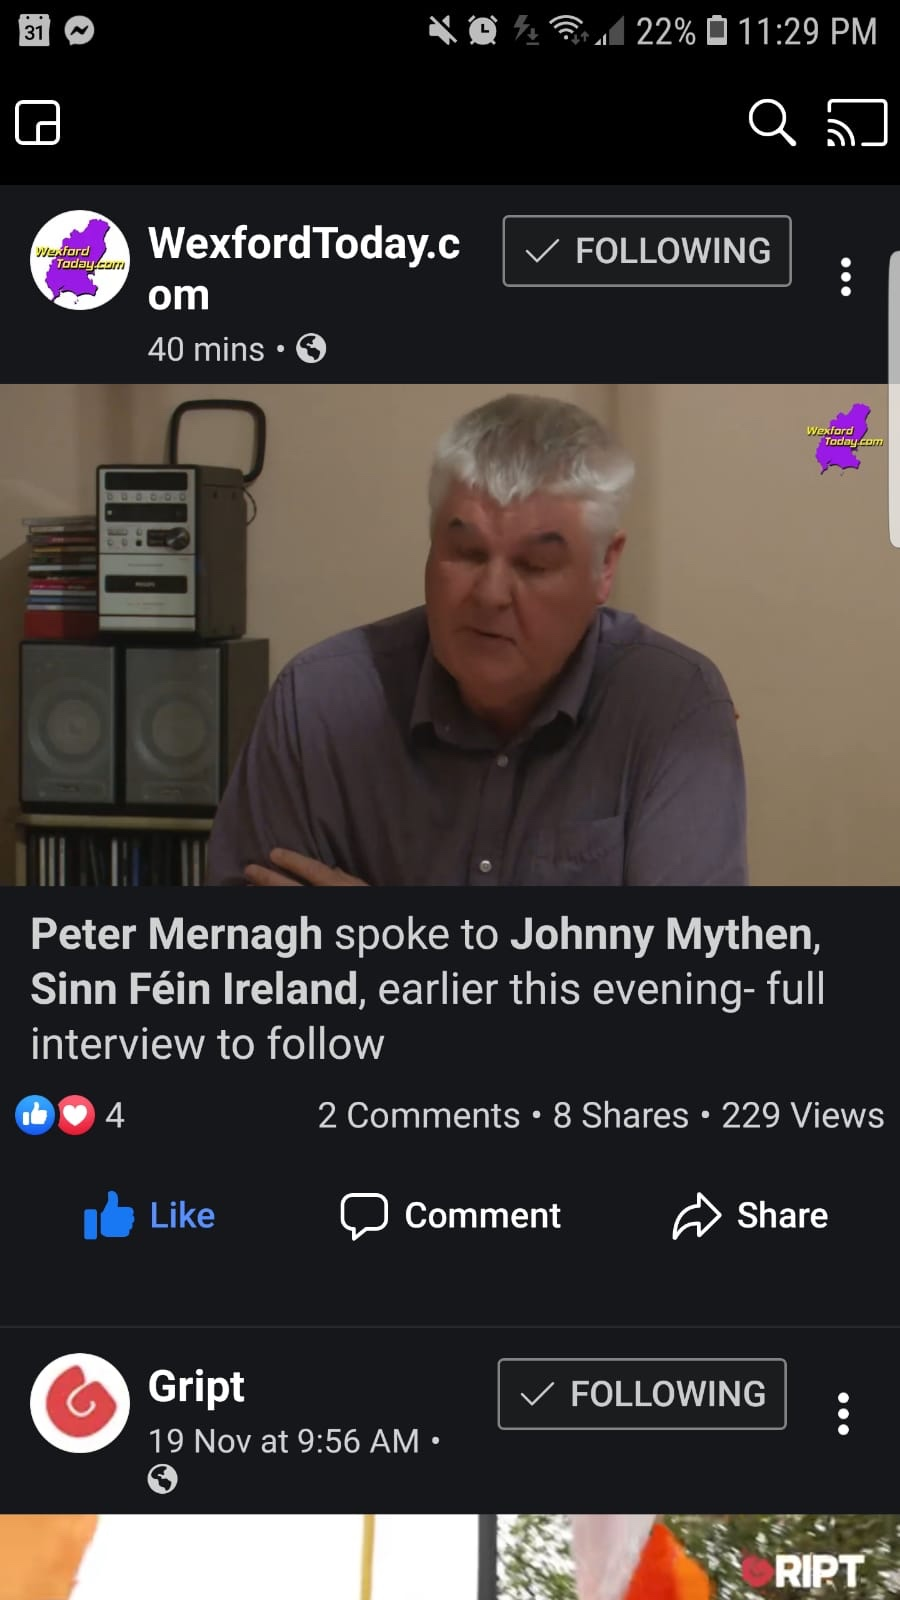 Wexford By-election candidate Johnny Mythen video interview by WexfordToday.com